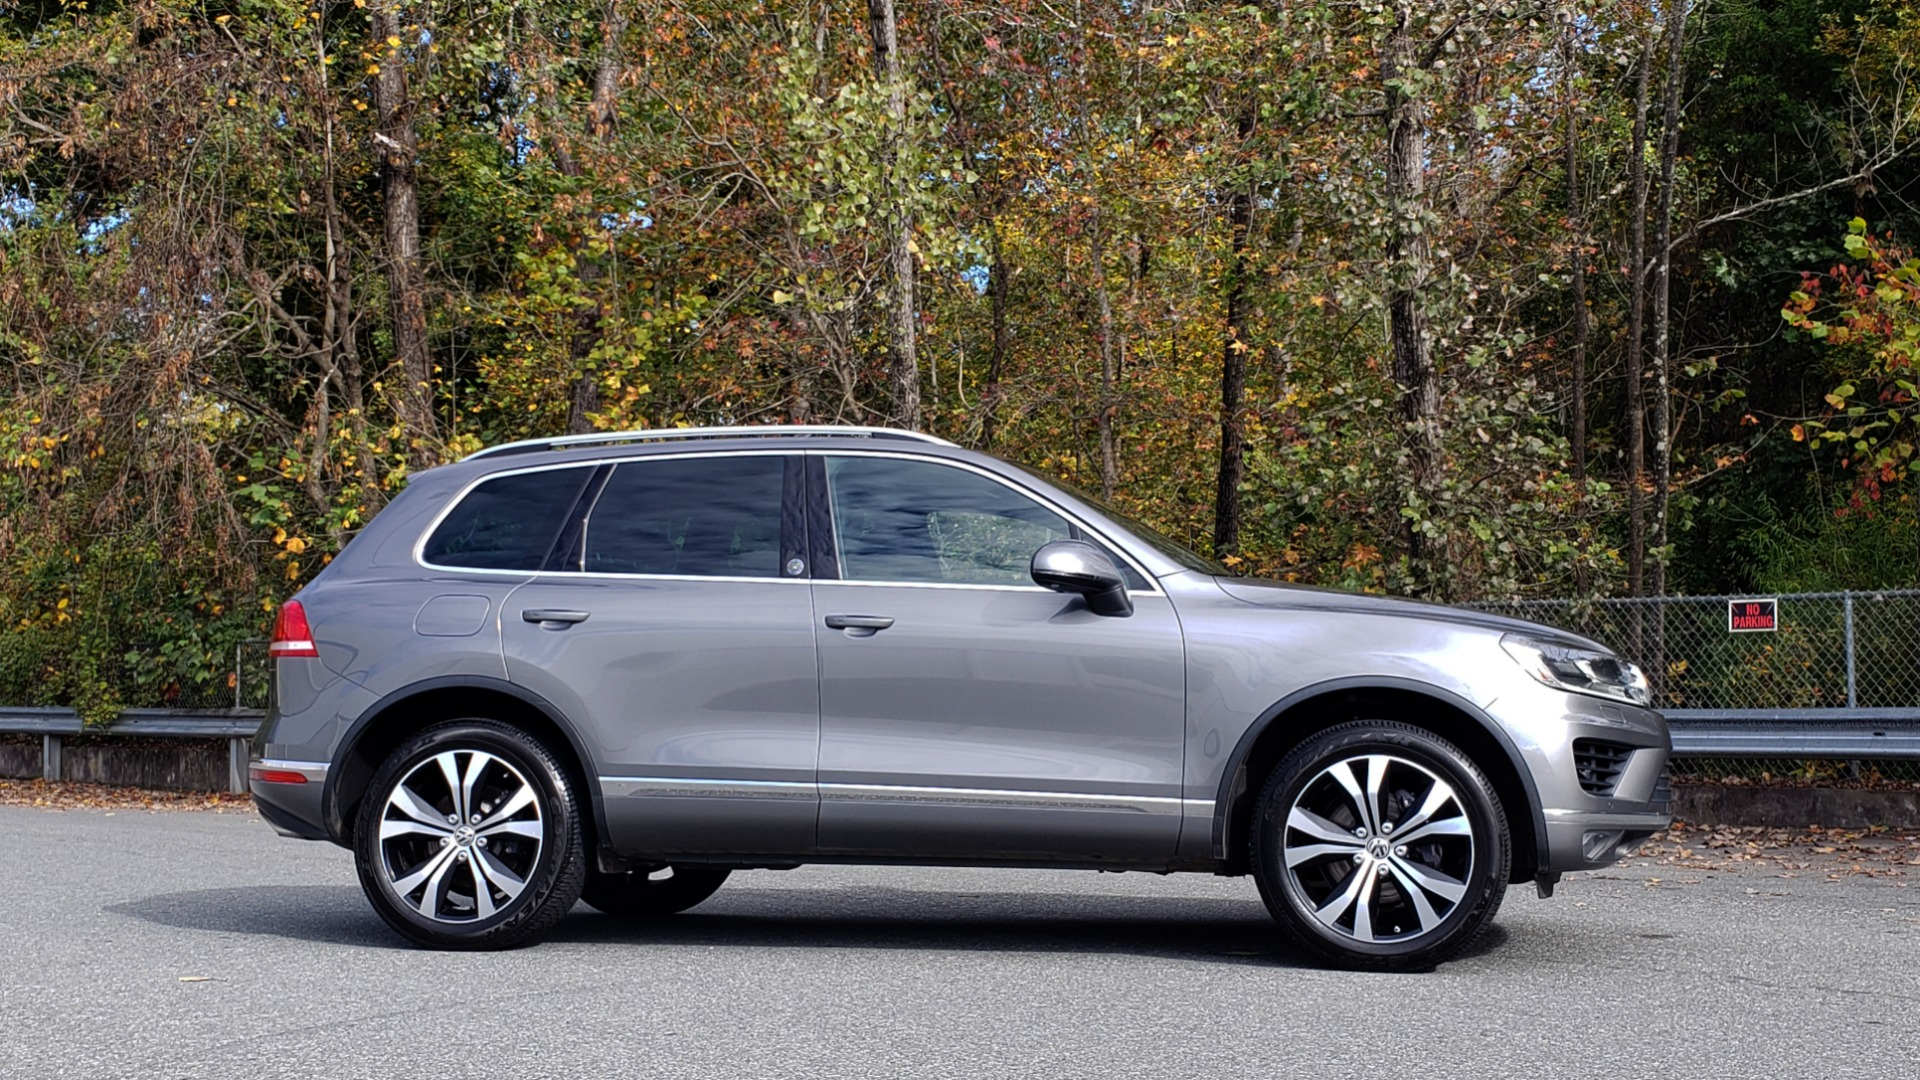 Used 2017 Volkswagen TOUAREG V6 WOLFSBURG EDITION / NAV / PANO-ROOF / ACC / REARVIEW for sale Sold at Formula Imports in Charlotte NC 28227 6